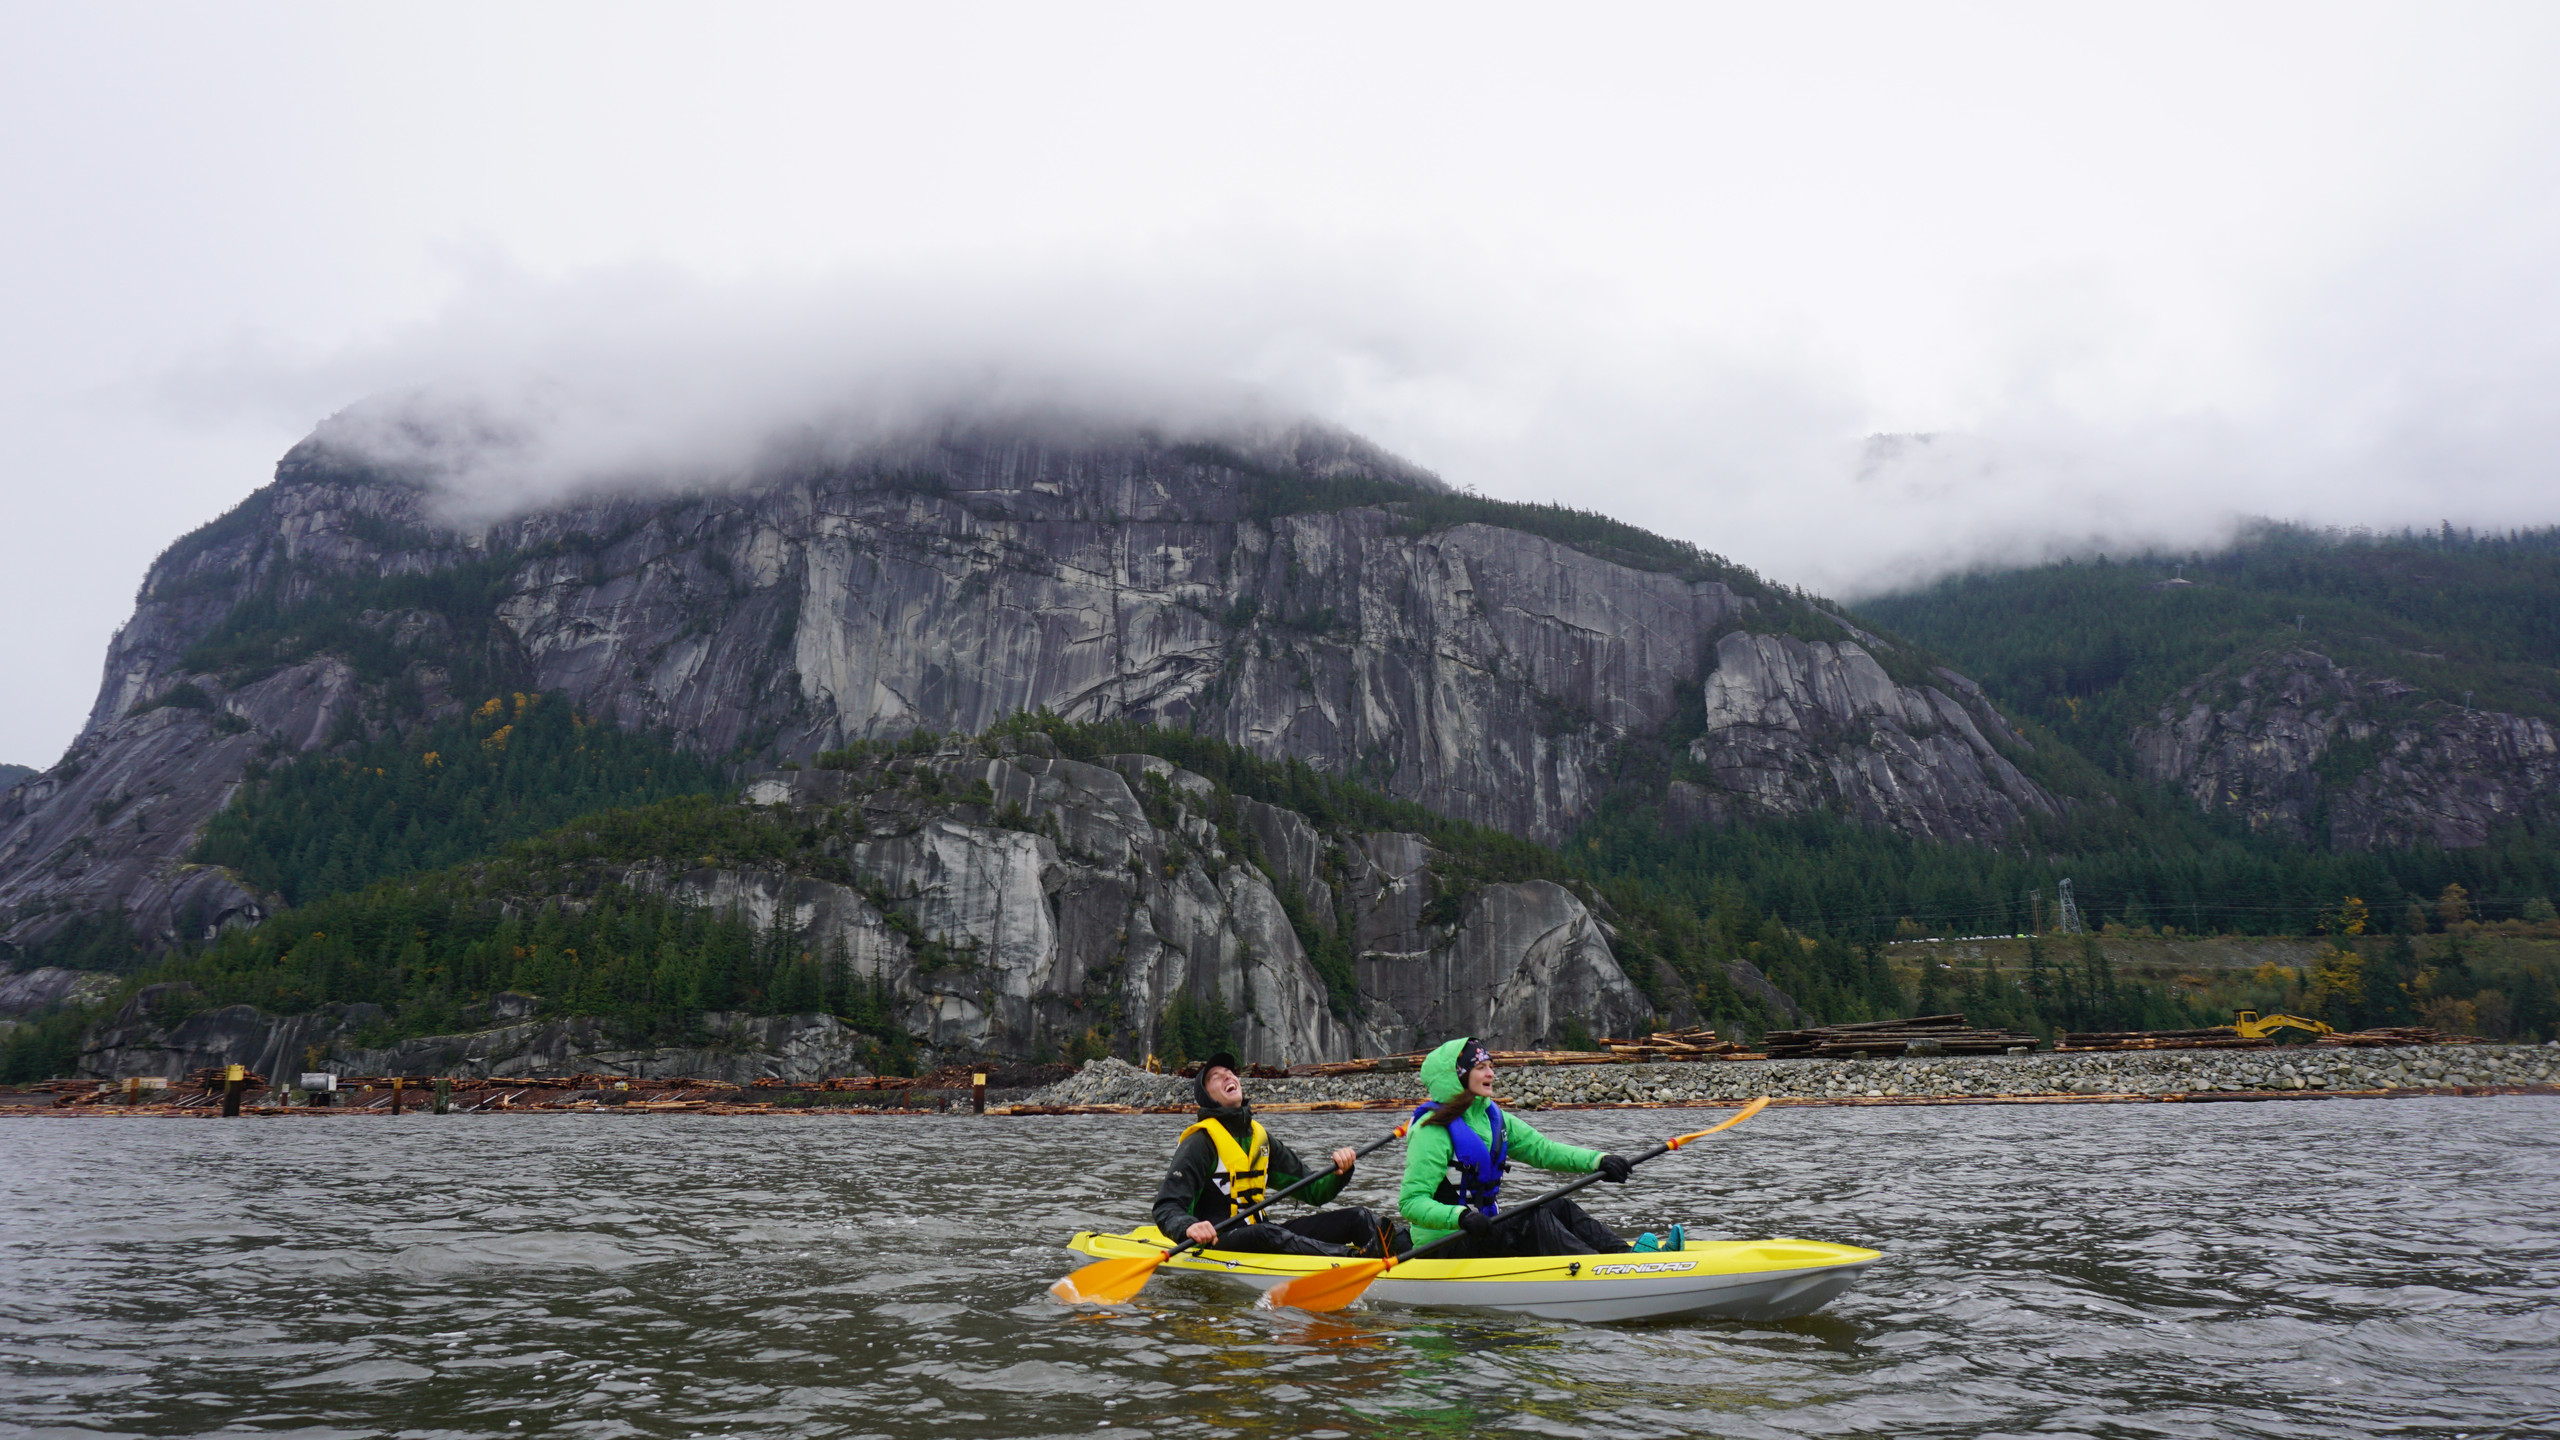 Rainy Kayaking with Fritz and Caitlyn. They climbed exactly 0 meters of Squamish rock on their 5 day visit.